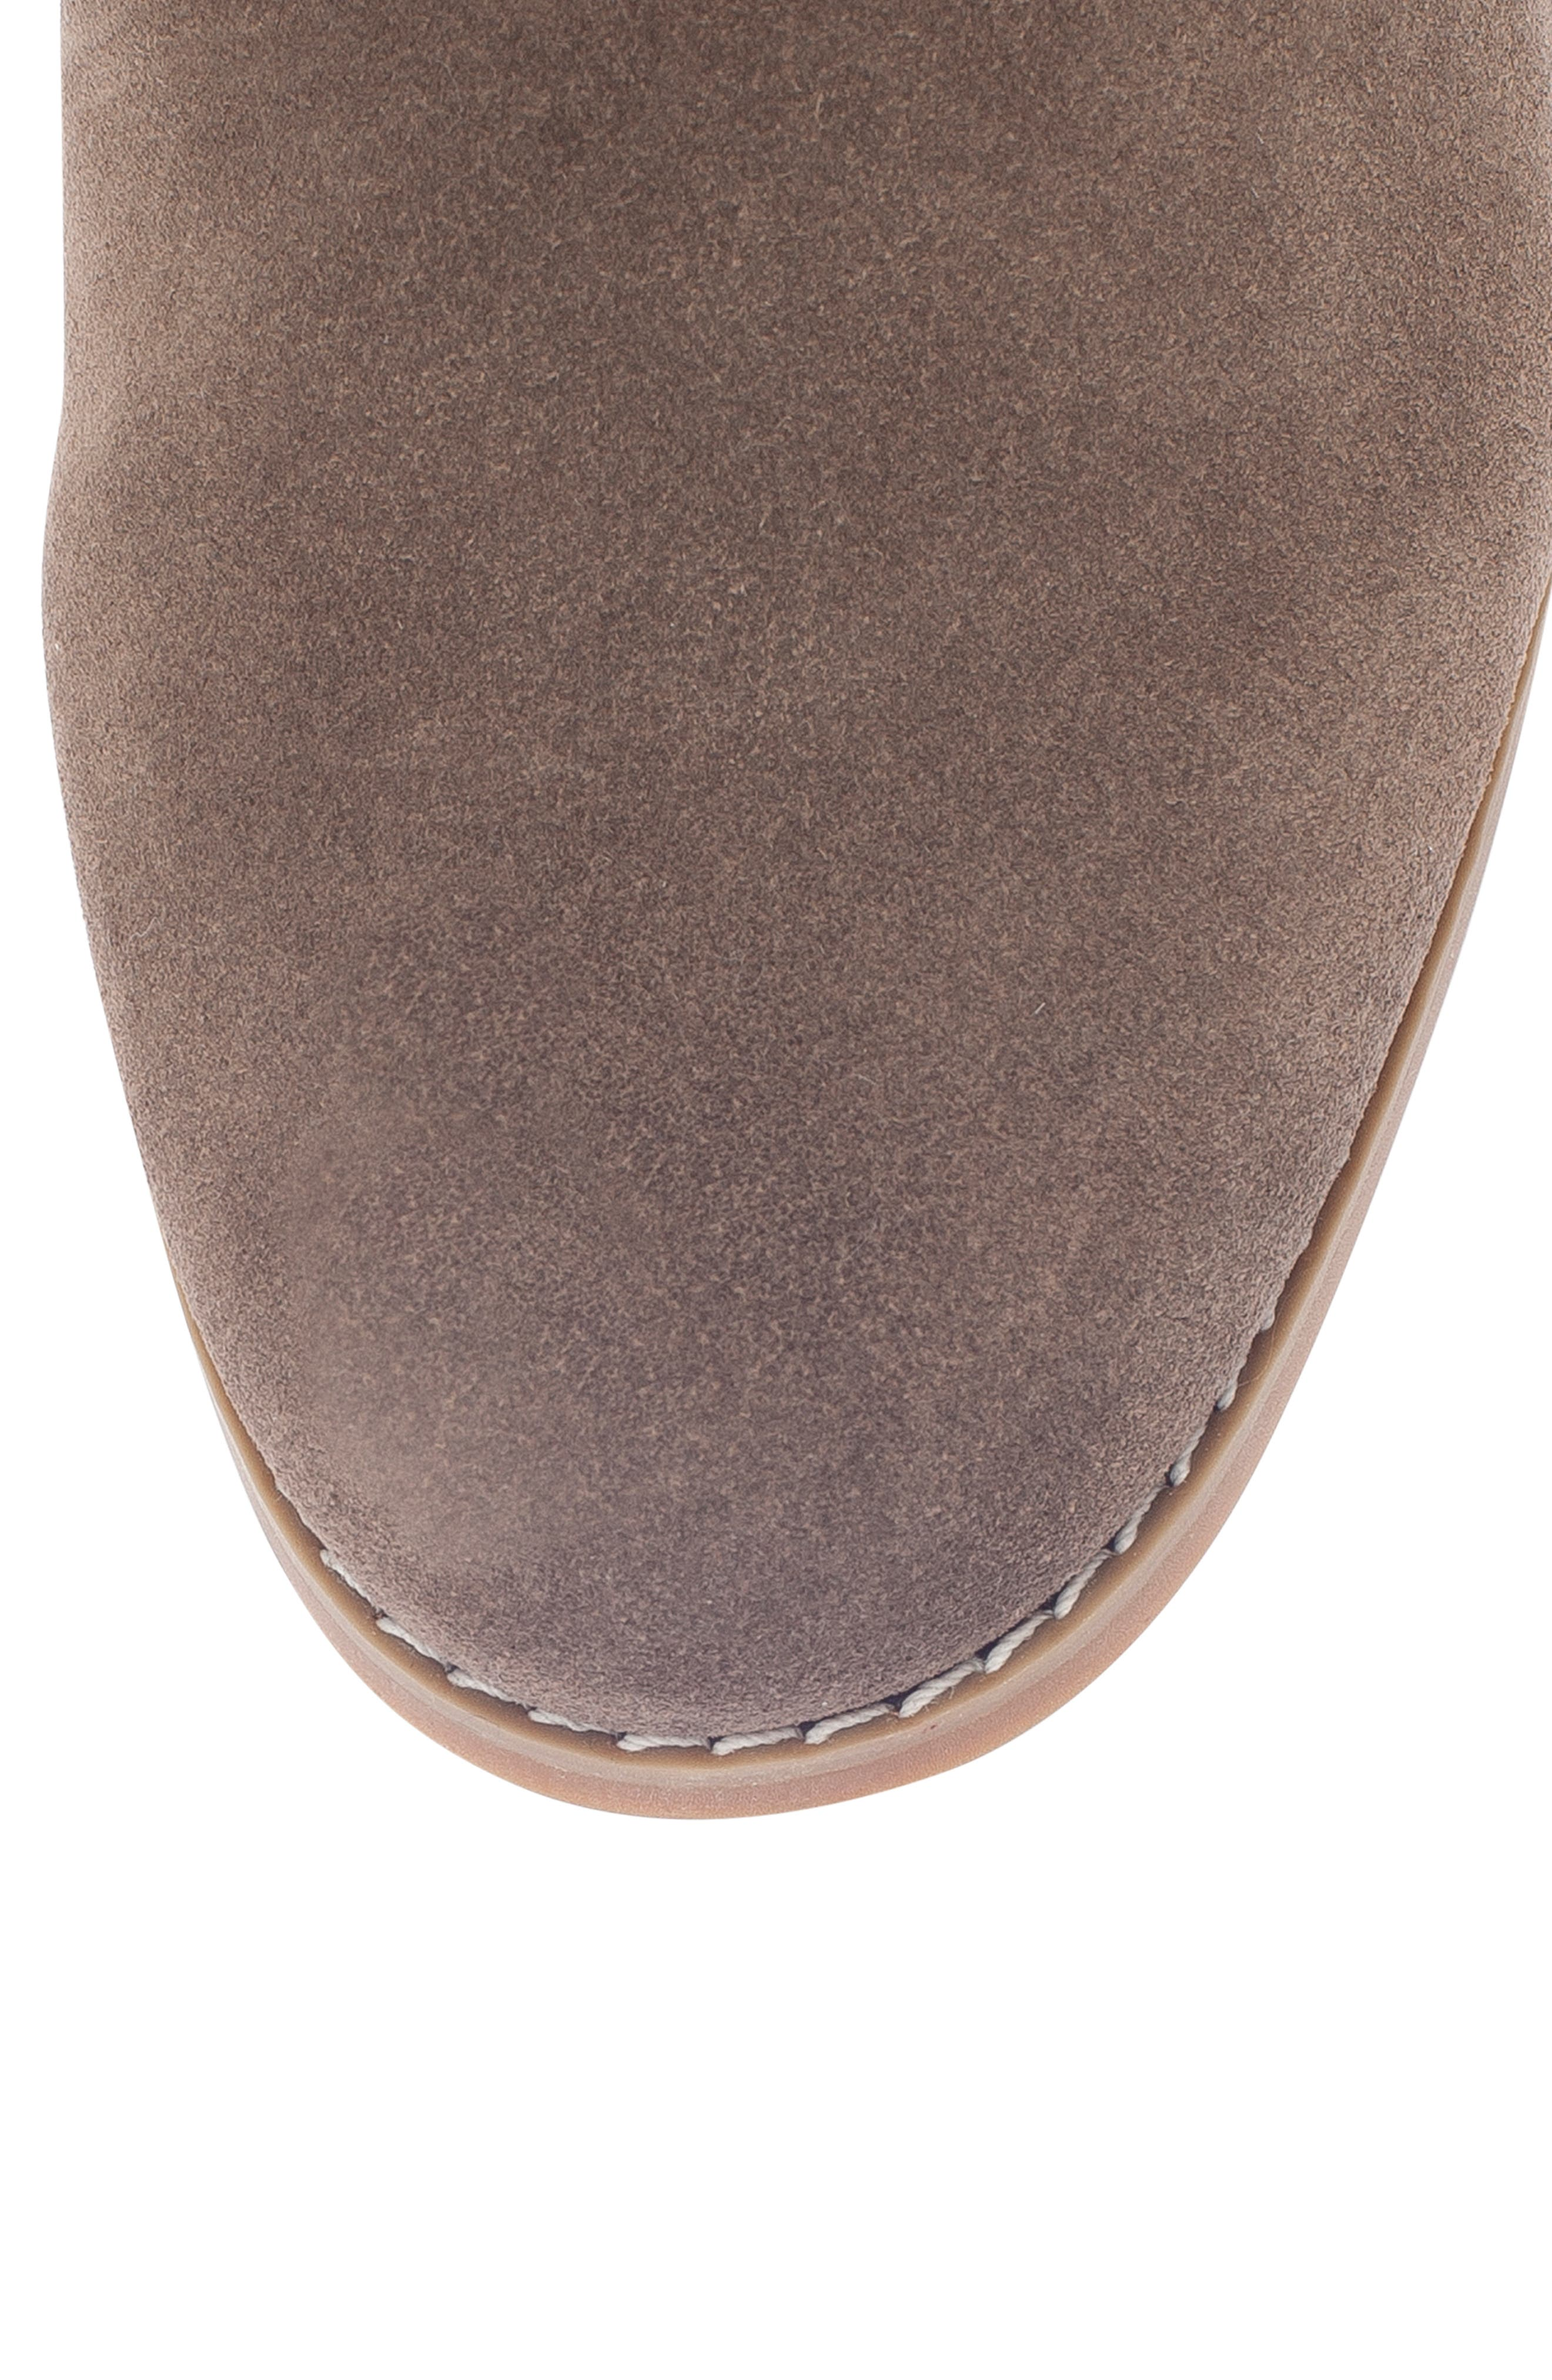 Rayann Waterproof Desert Boot,                             Alternate thumbnail 5, color,                             DARK TAUPE SUEDE